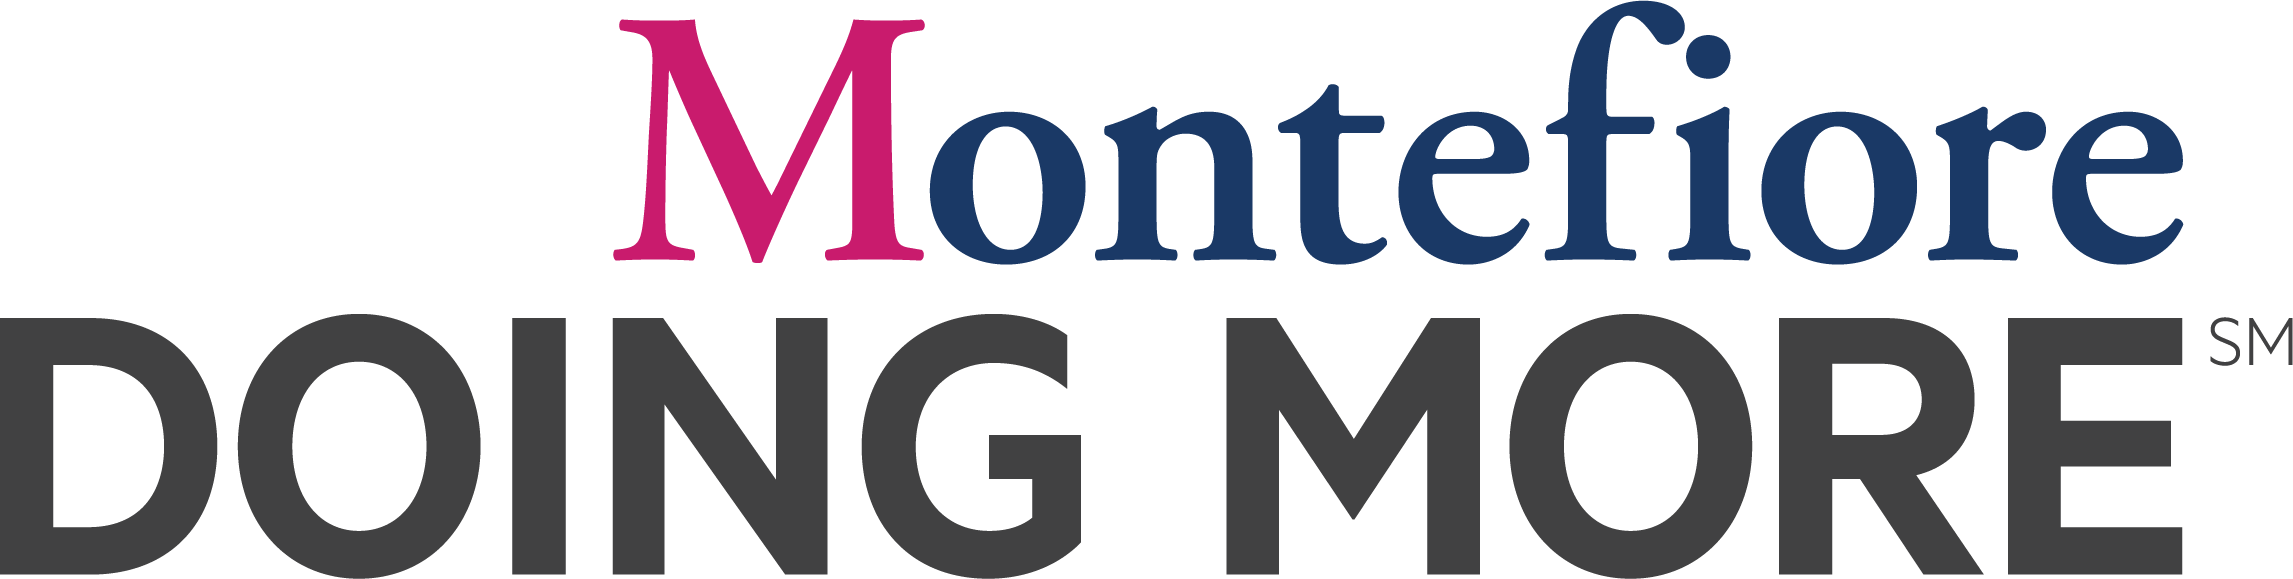 Montefiore_Doing More_SM_RGB_LARGEMONTE (1).png